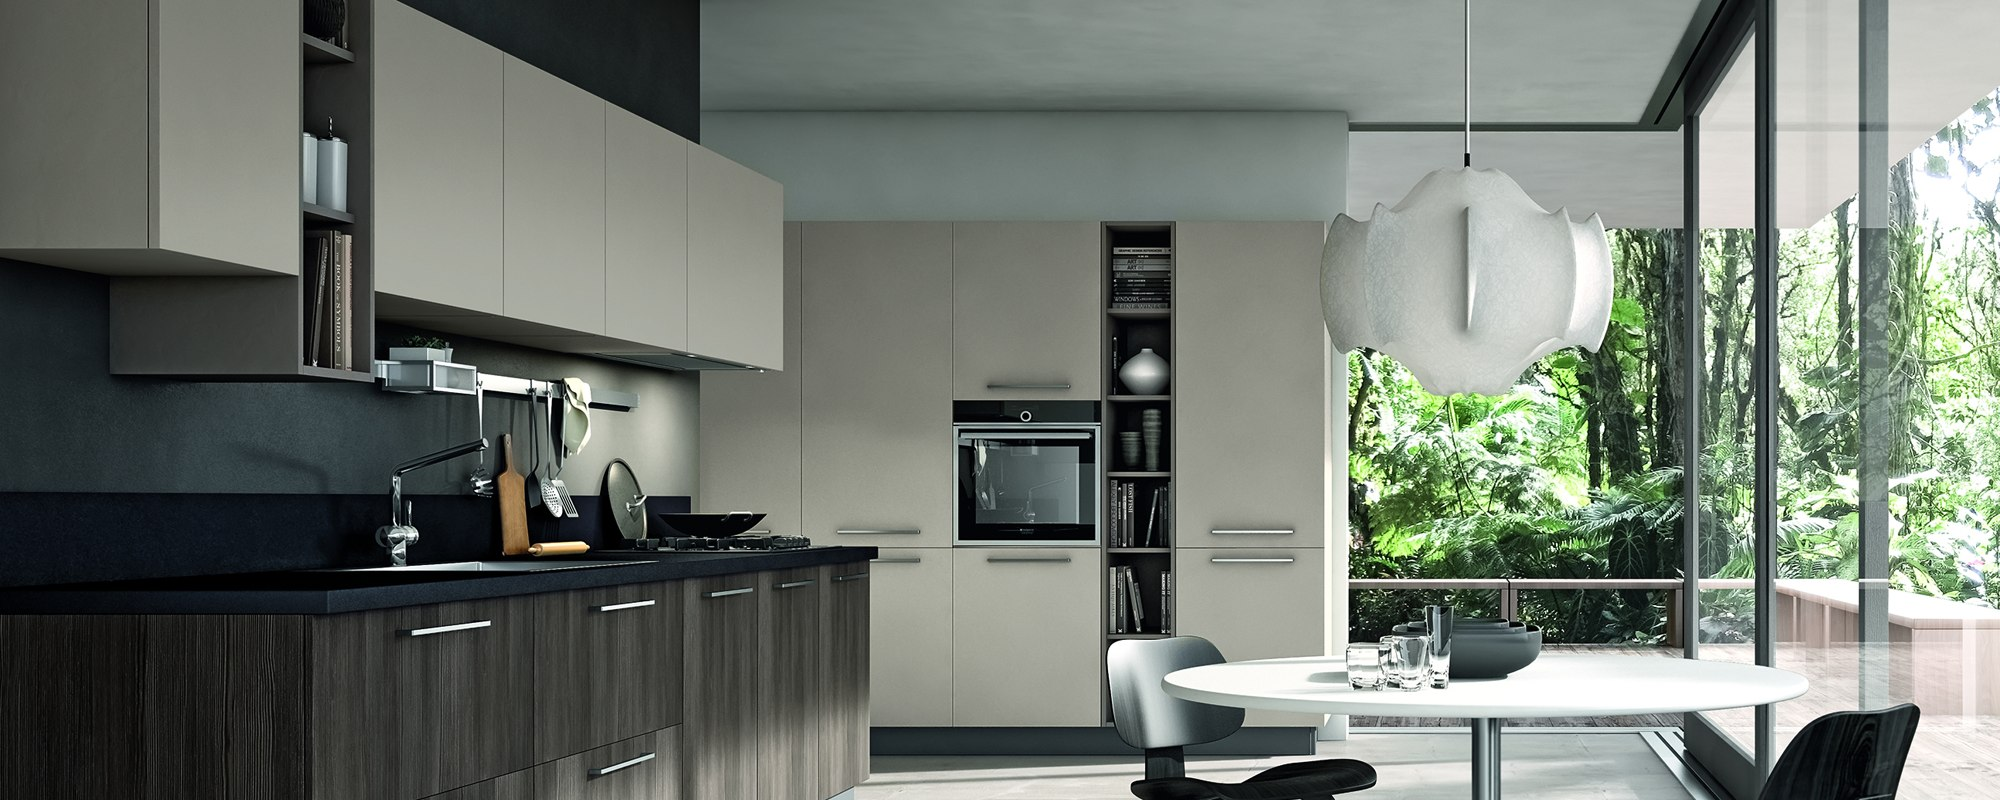 Stosa replay next mobili gala - Cucine stosa moderne ...